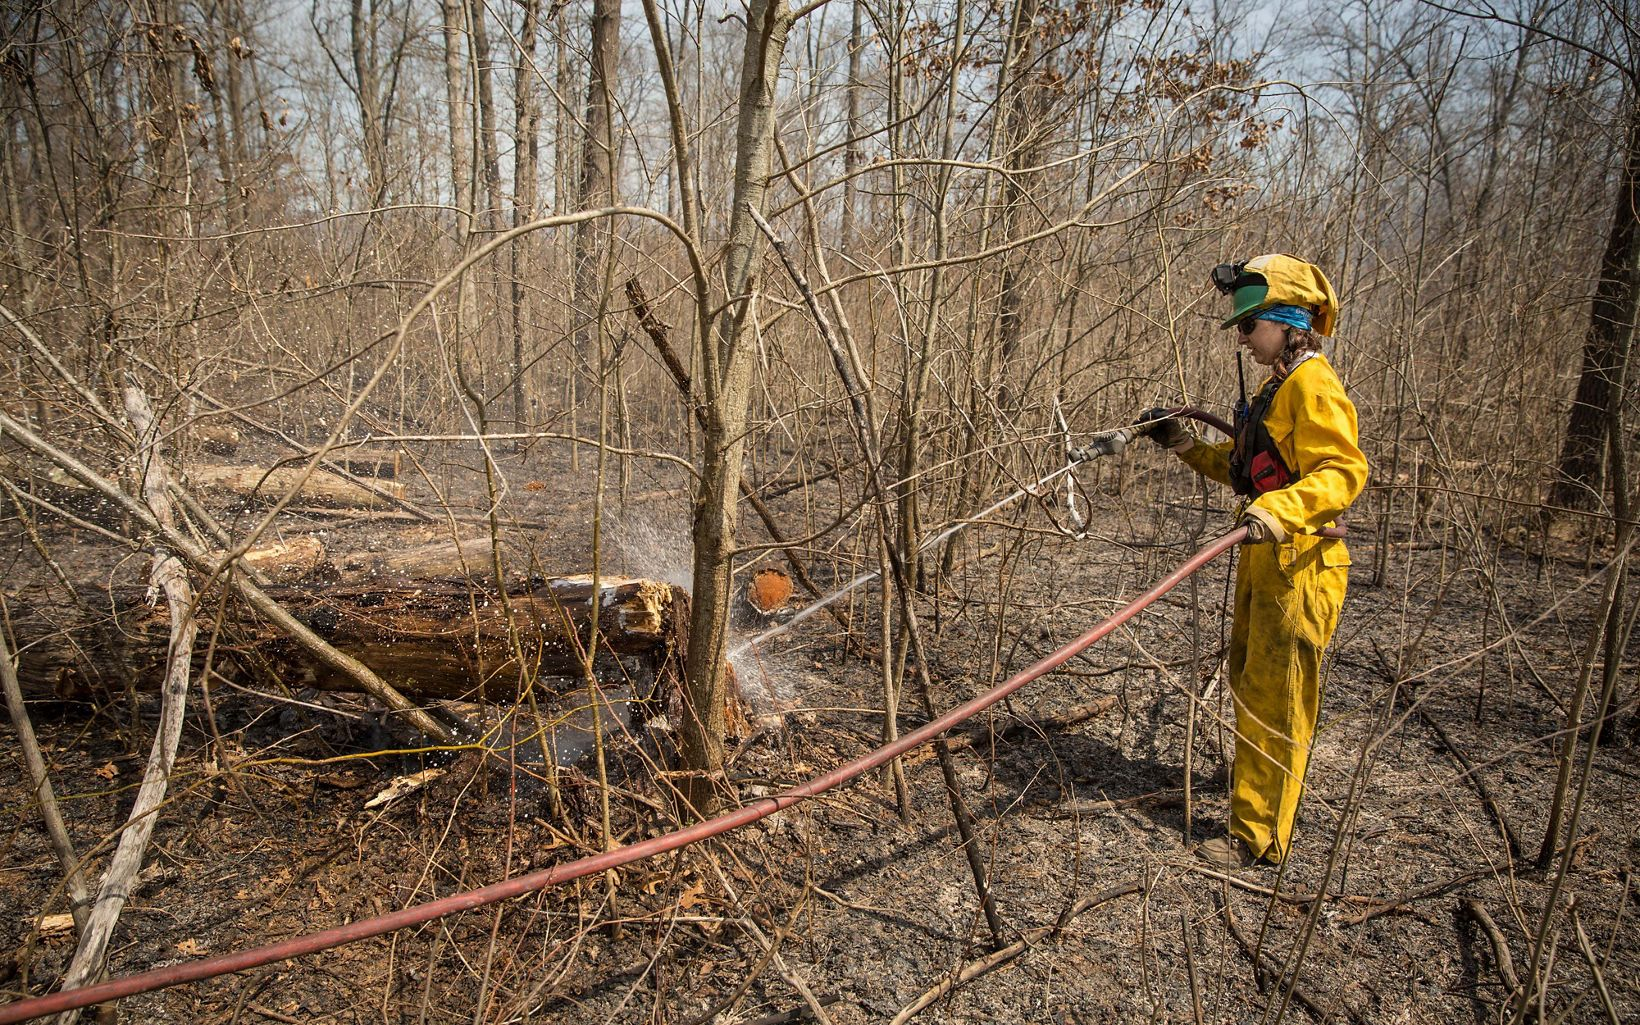 A man in yellow holds a long hose in the woods.